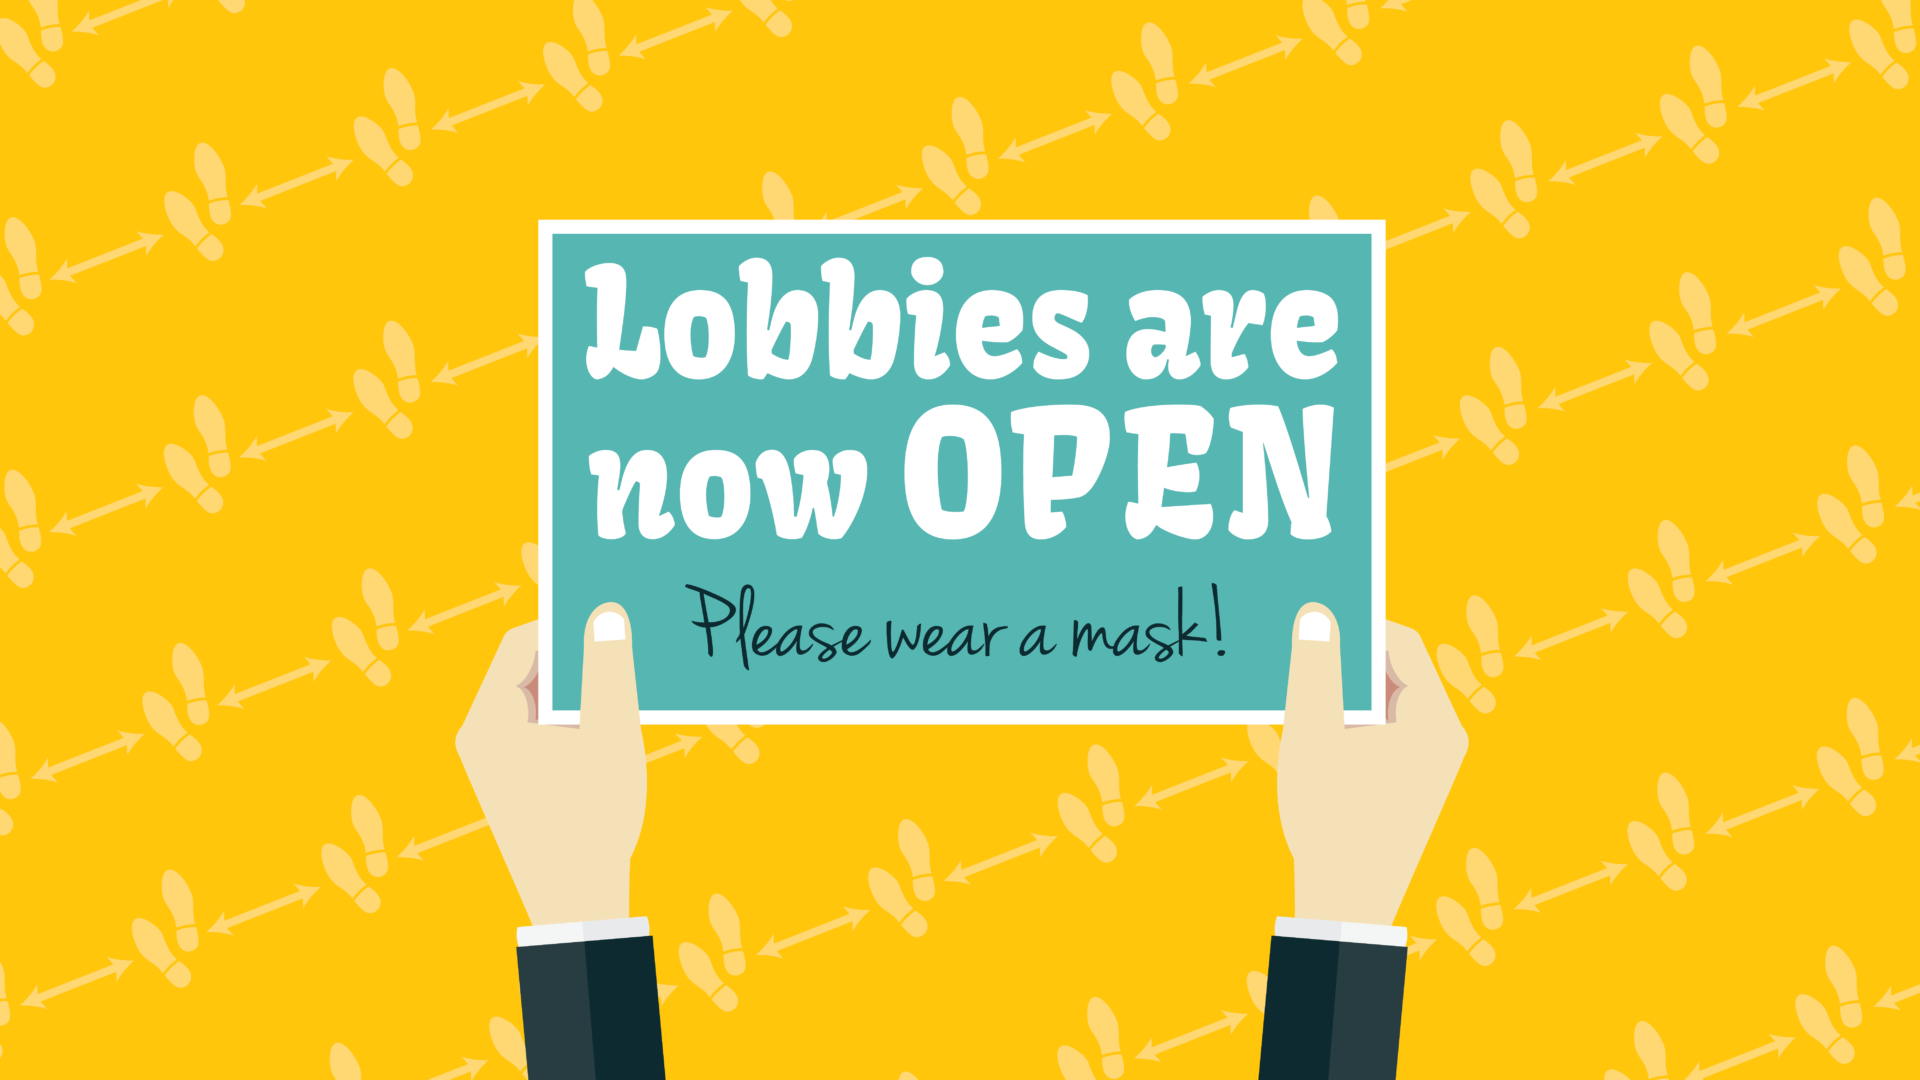 Lobbies are now Open hands holding sign. Please wear a mask.